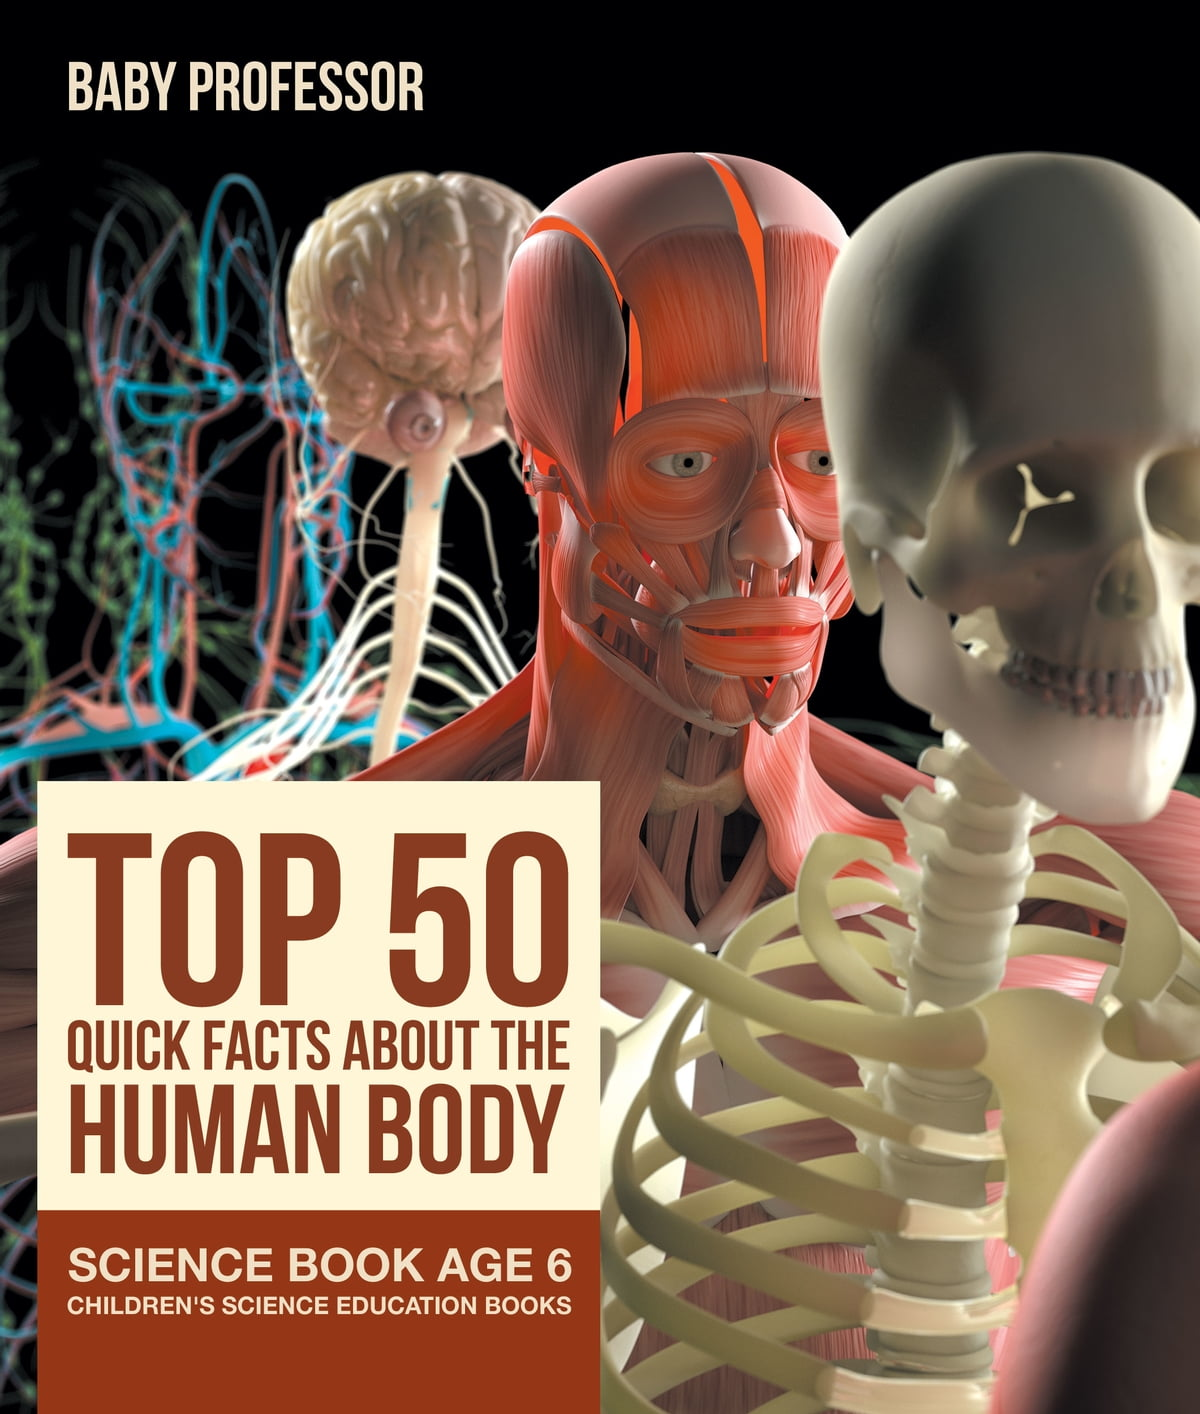 Schön Human Anatomy And Physiology Audiobook Free Ideen ...